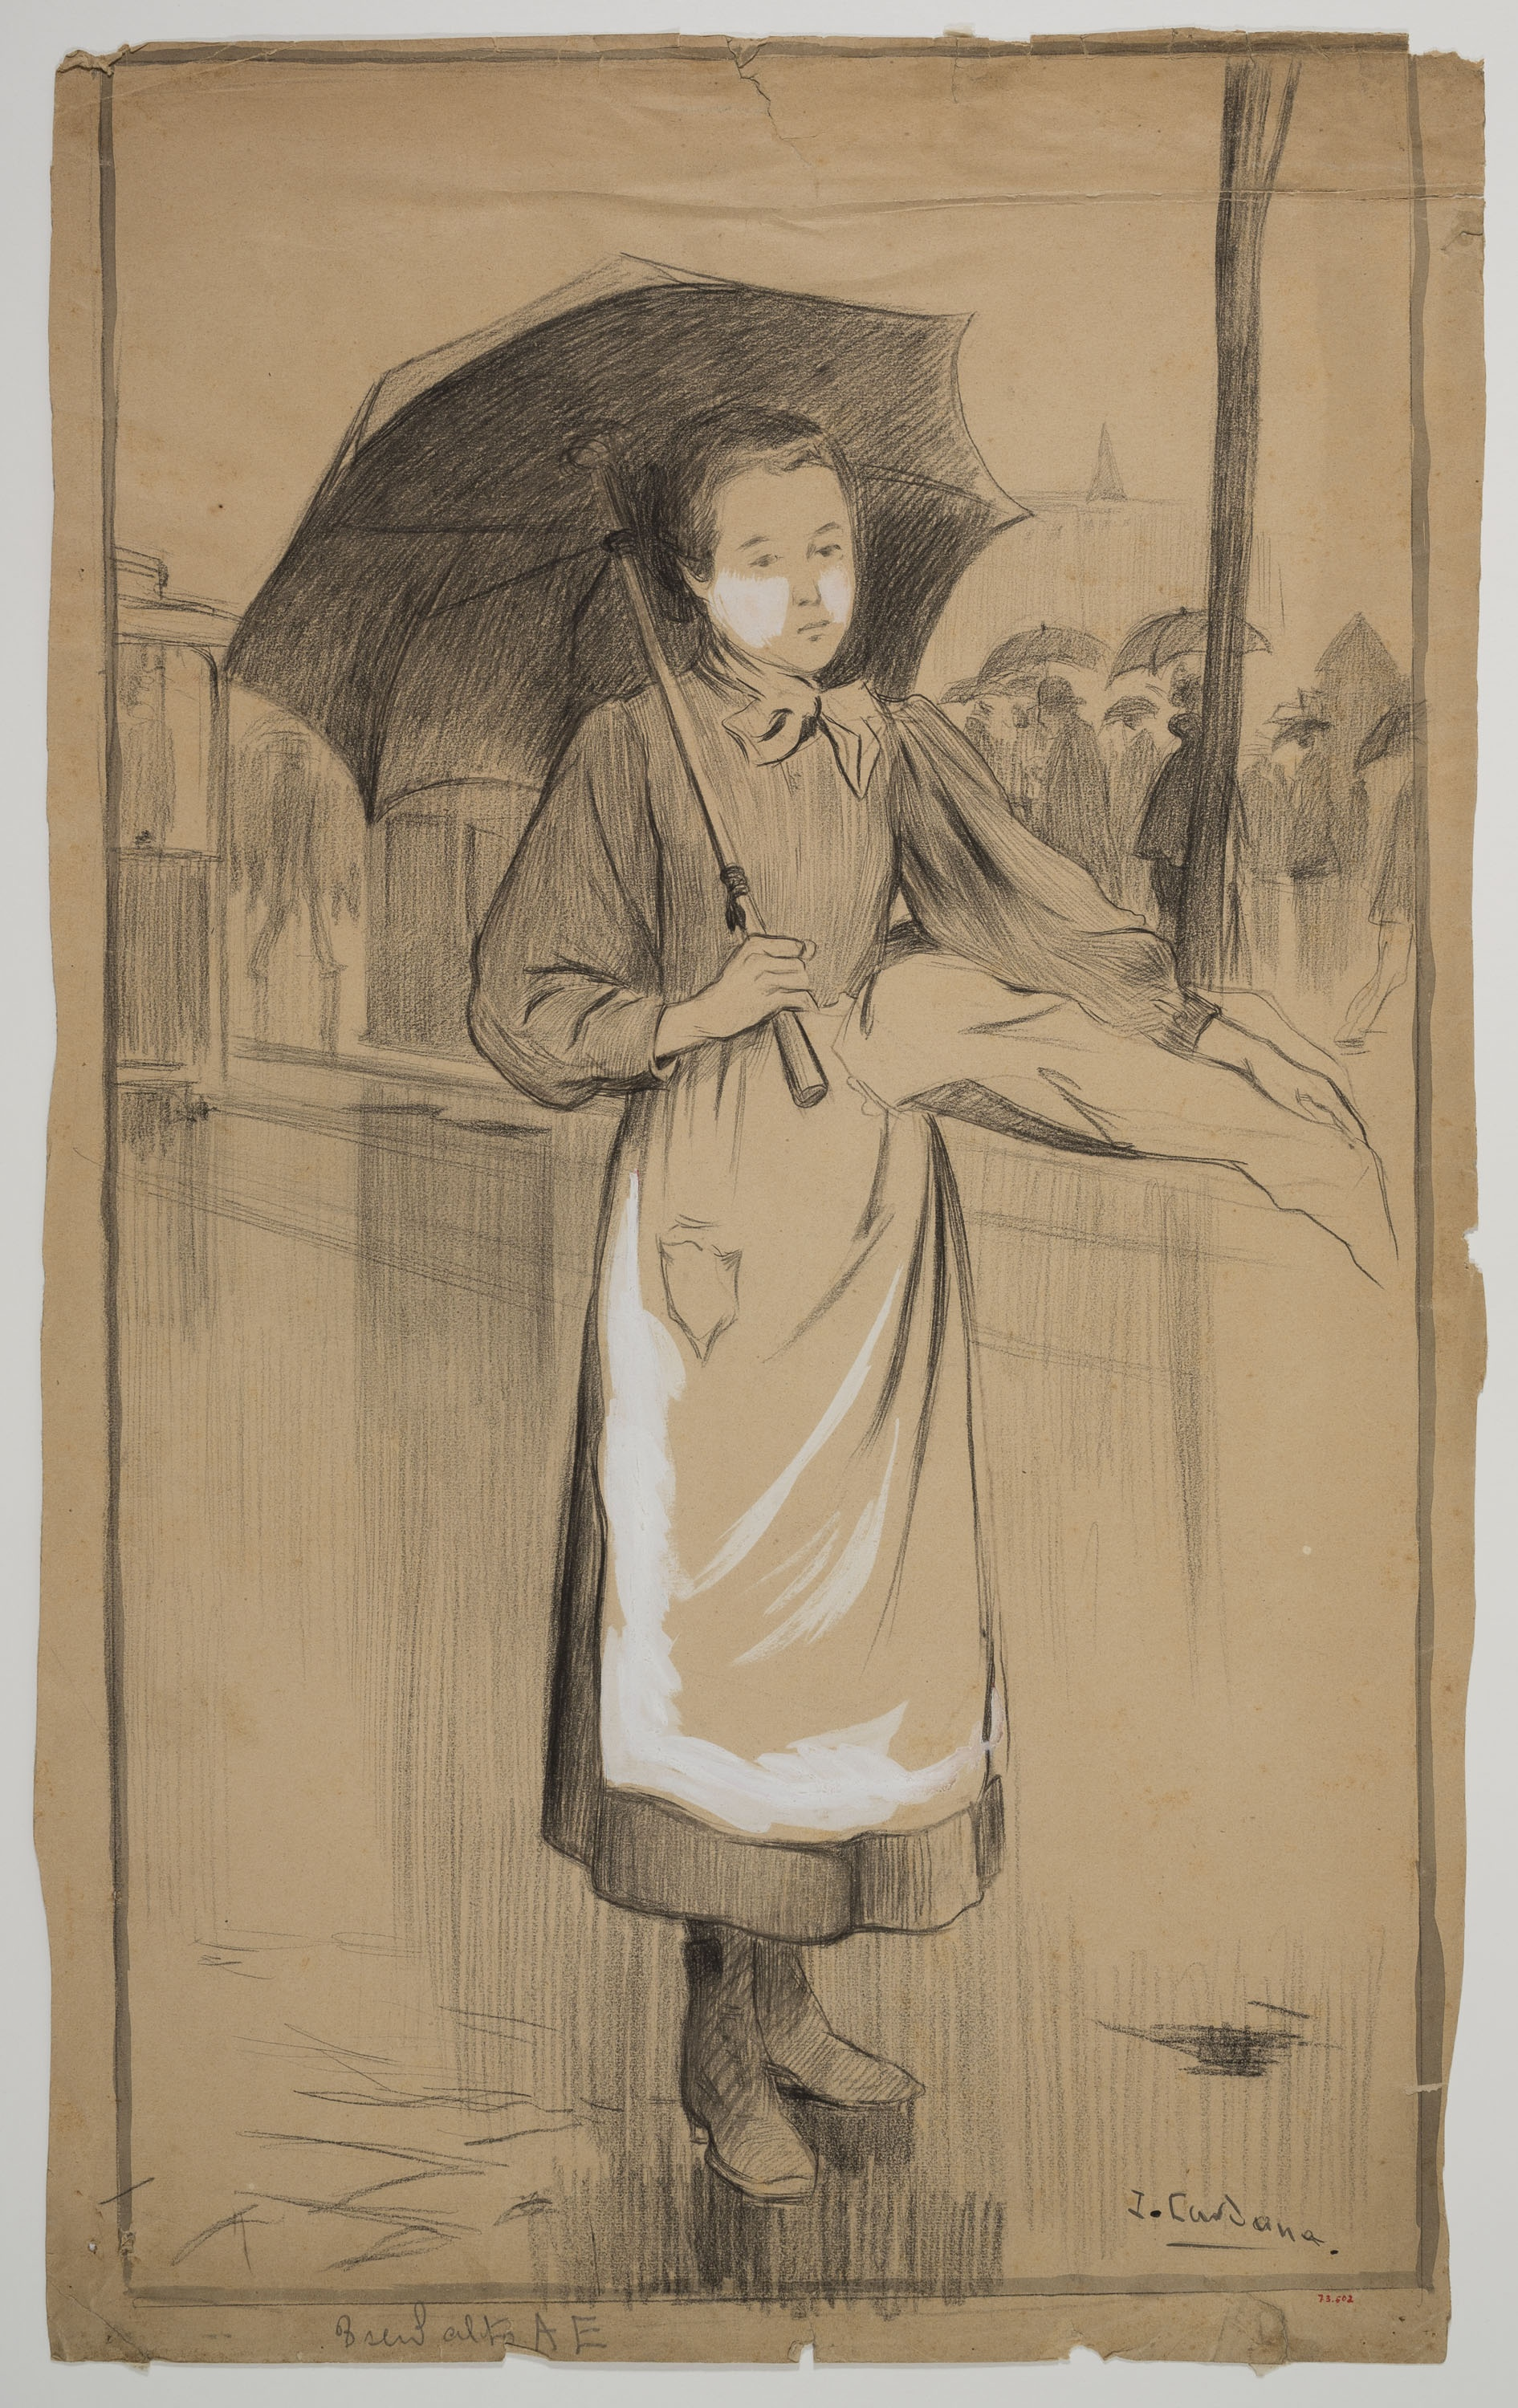 Joan Cardona - Girl with an umbrella - Circa 1902